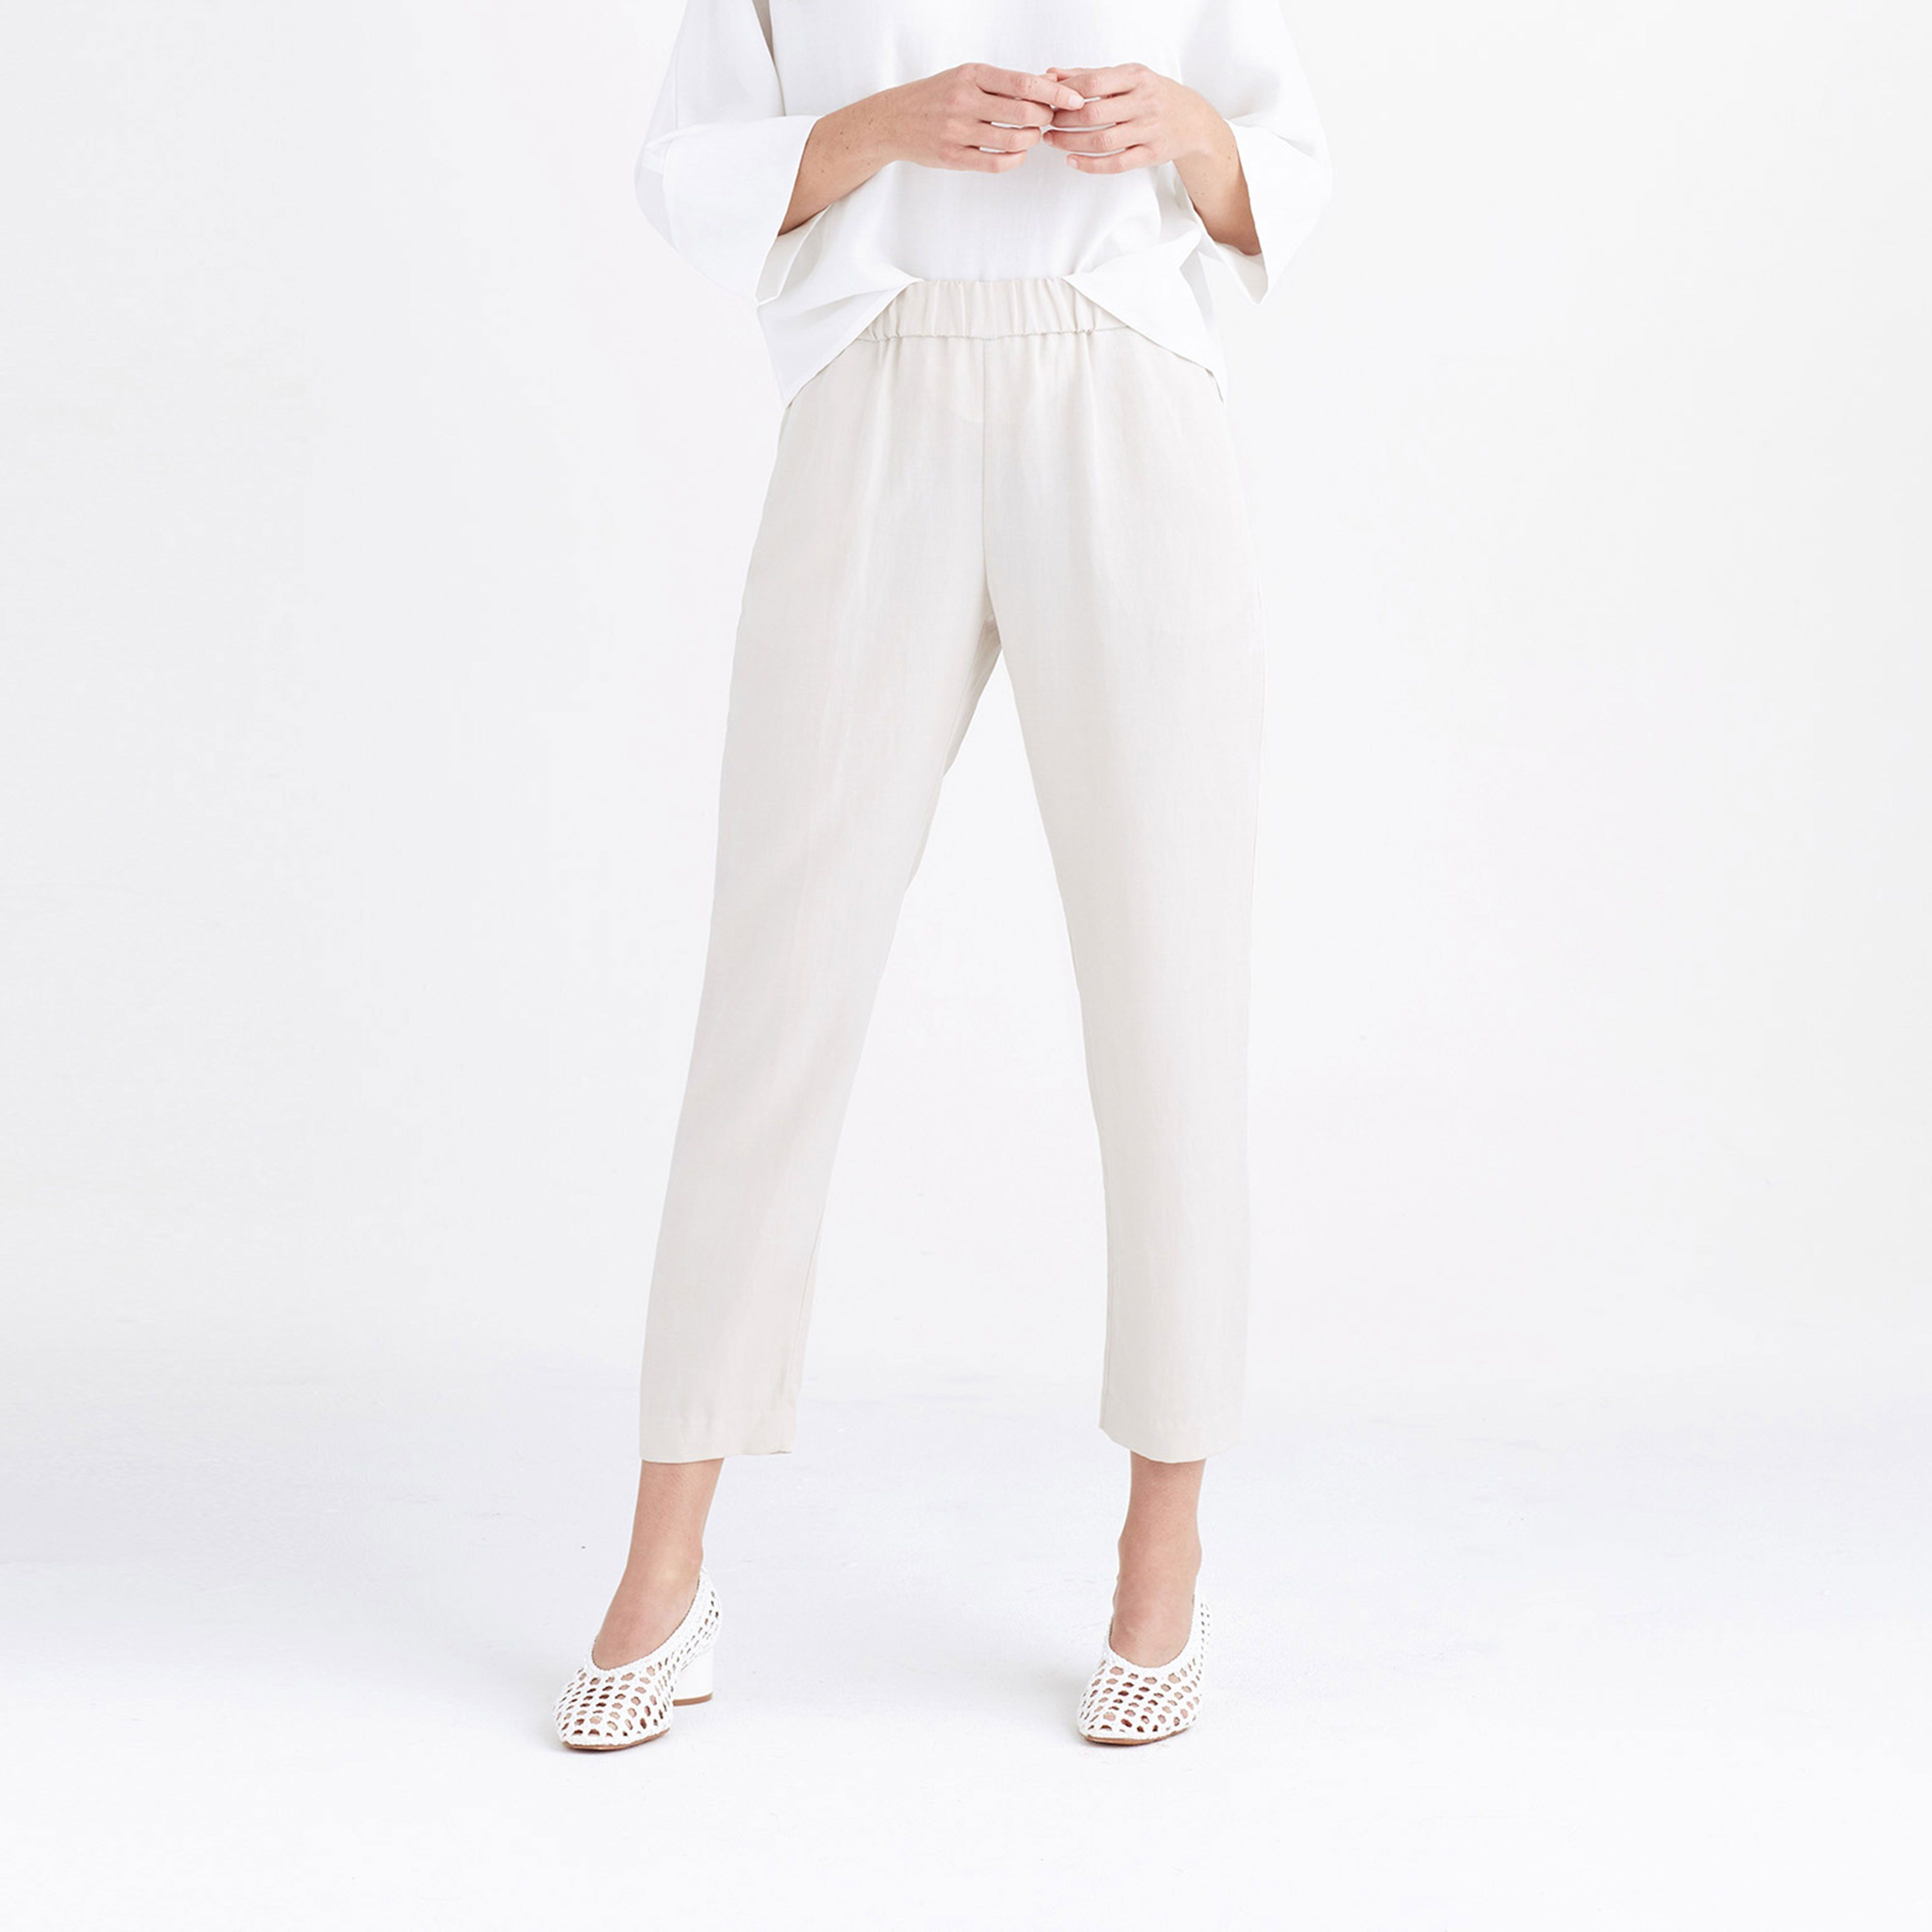 eaa964a82216a The Tapered Pant